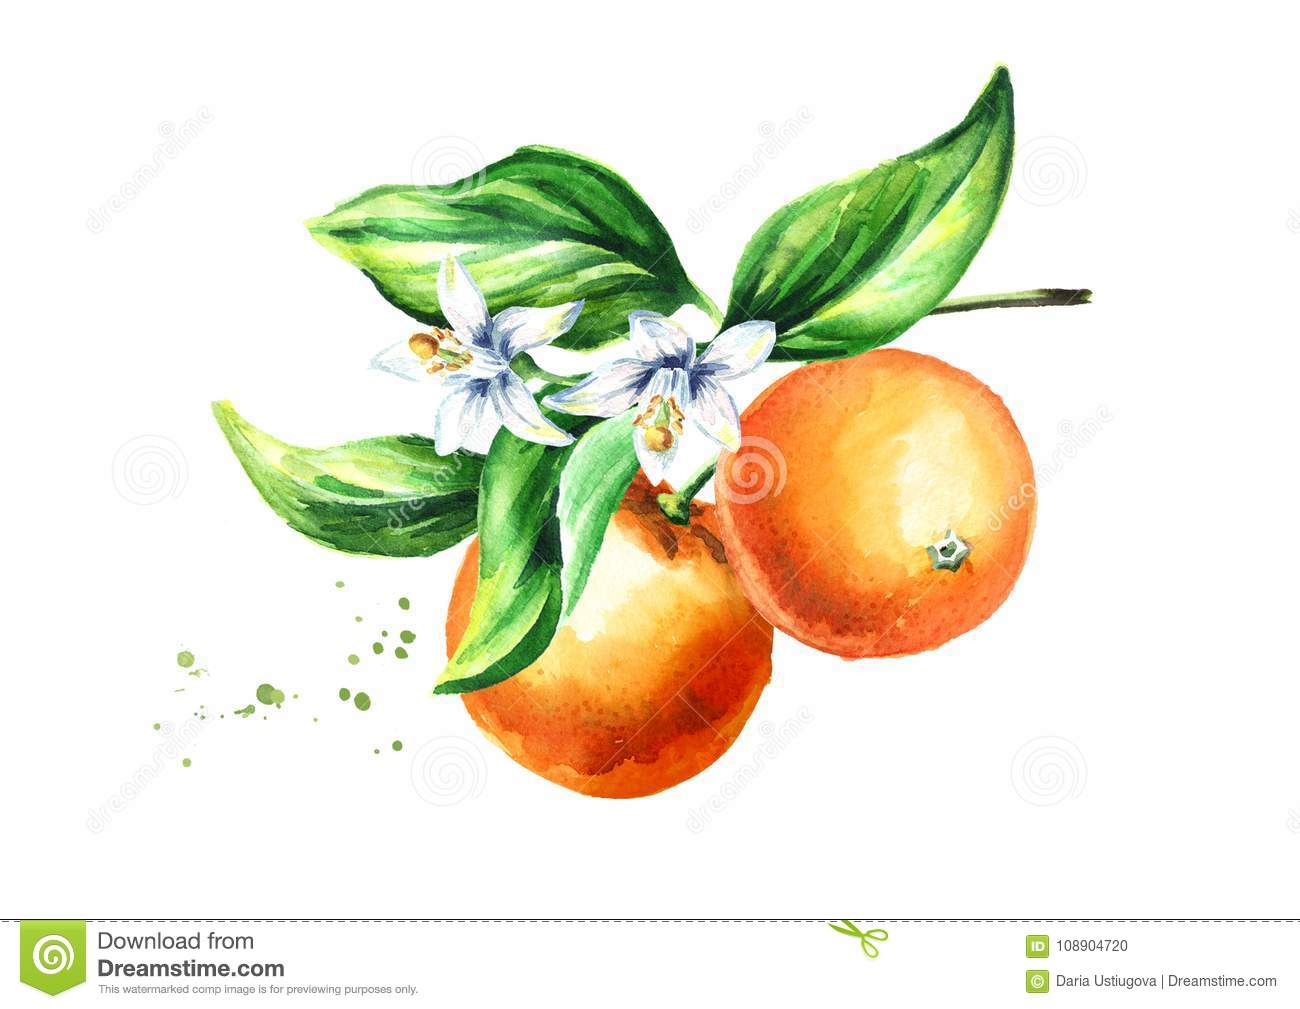 Orange Branch With Fruits Flowers And Leaves Watercolor Hand Drawn Illustration On White Background Stock Illustration Illustration Of Orange Isolate 108904720